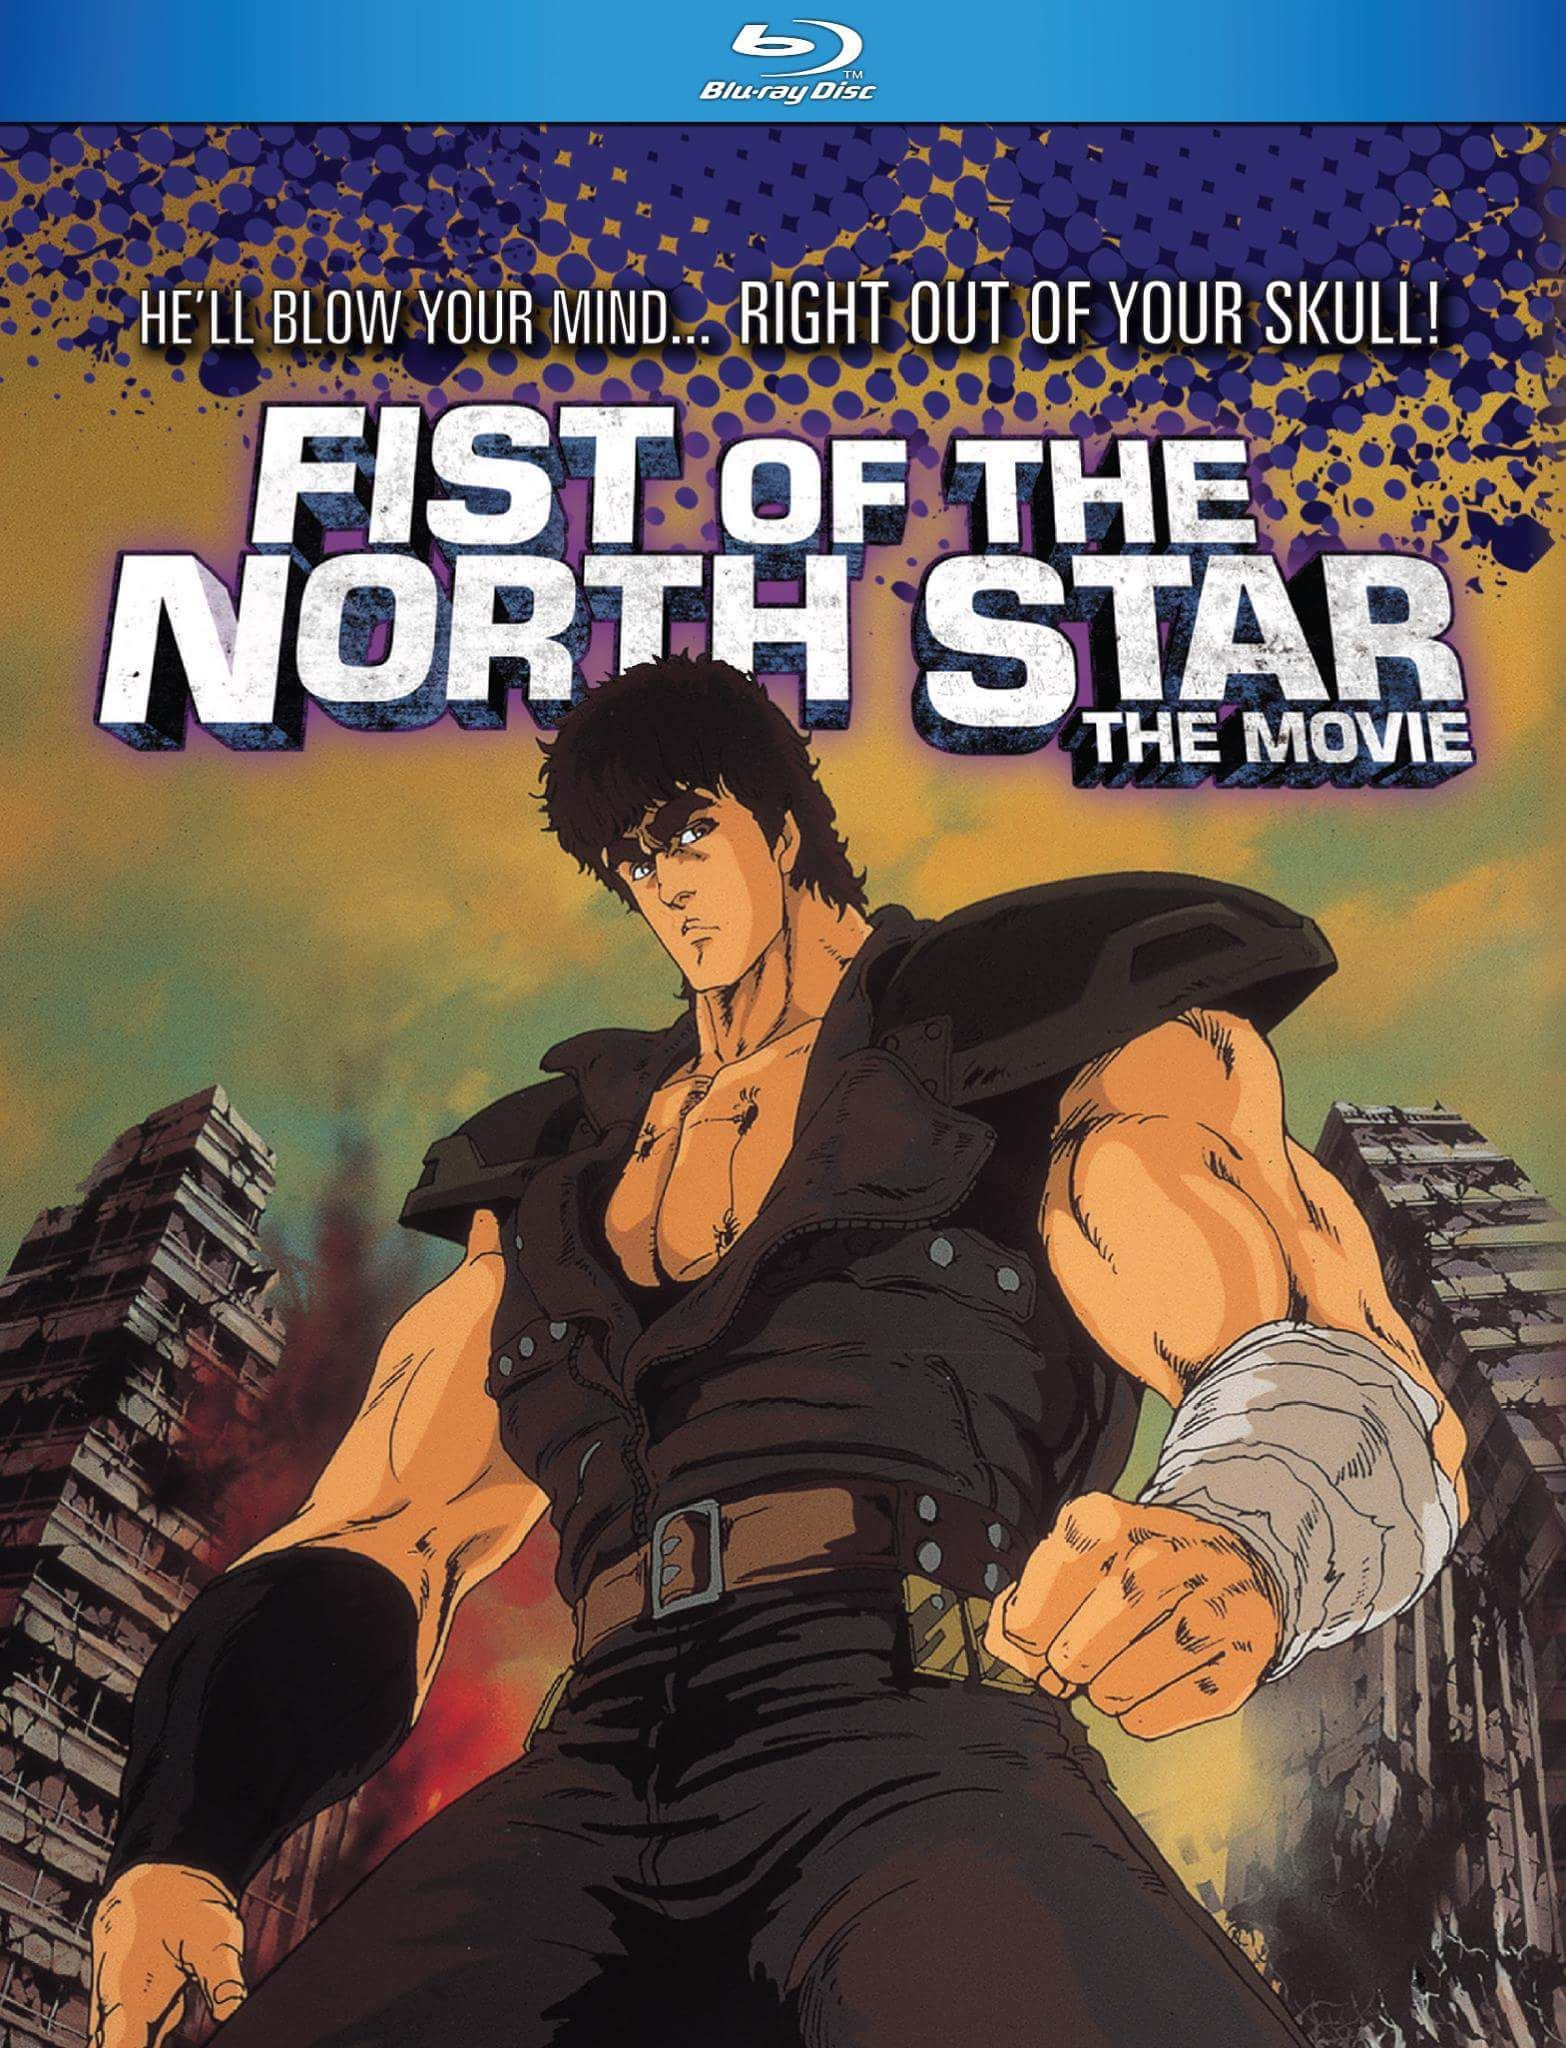 Fist of the north star the movie bluray north star